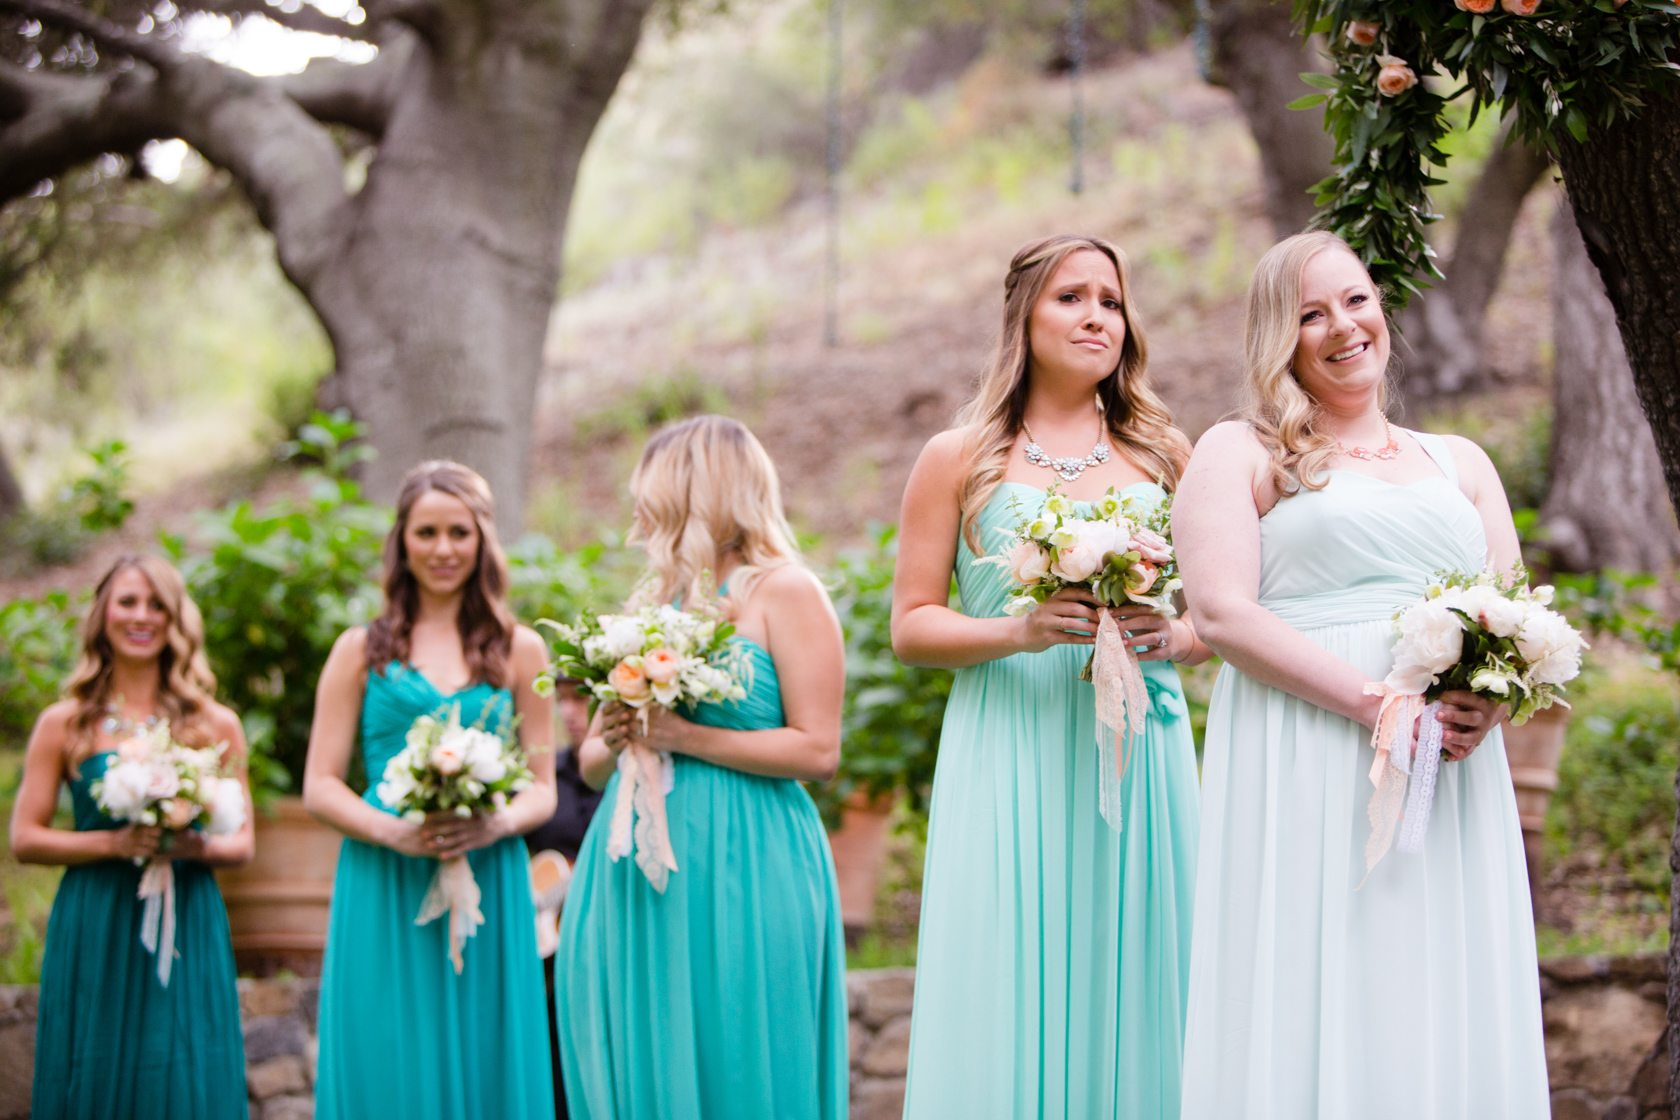 The_Printed_Palette_Wedding_at_Calamigos_Ranch_051.jpg